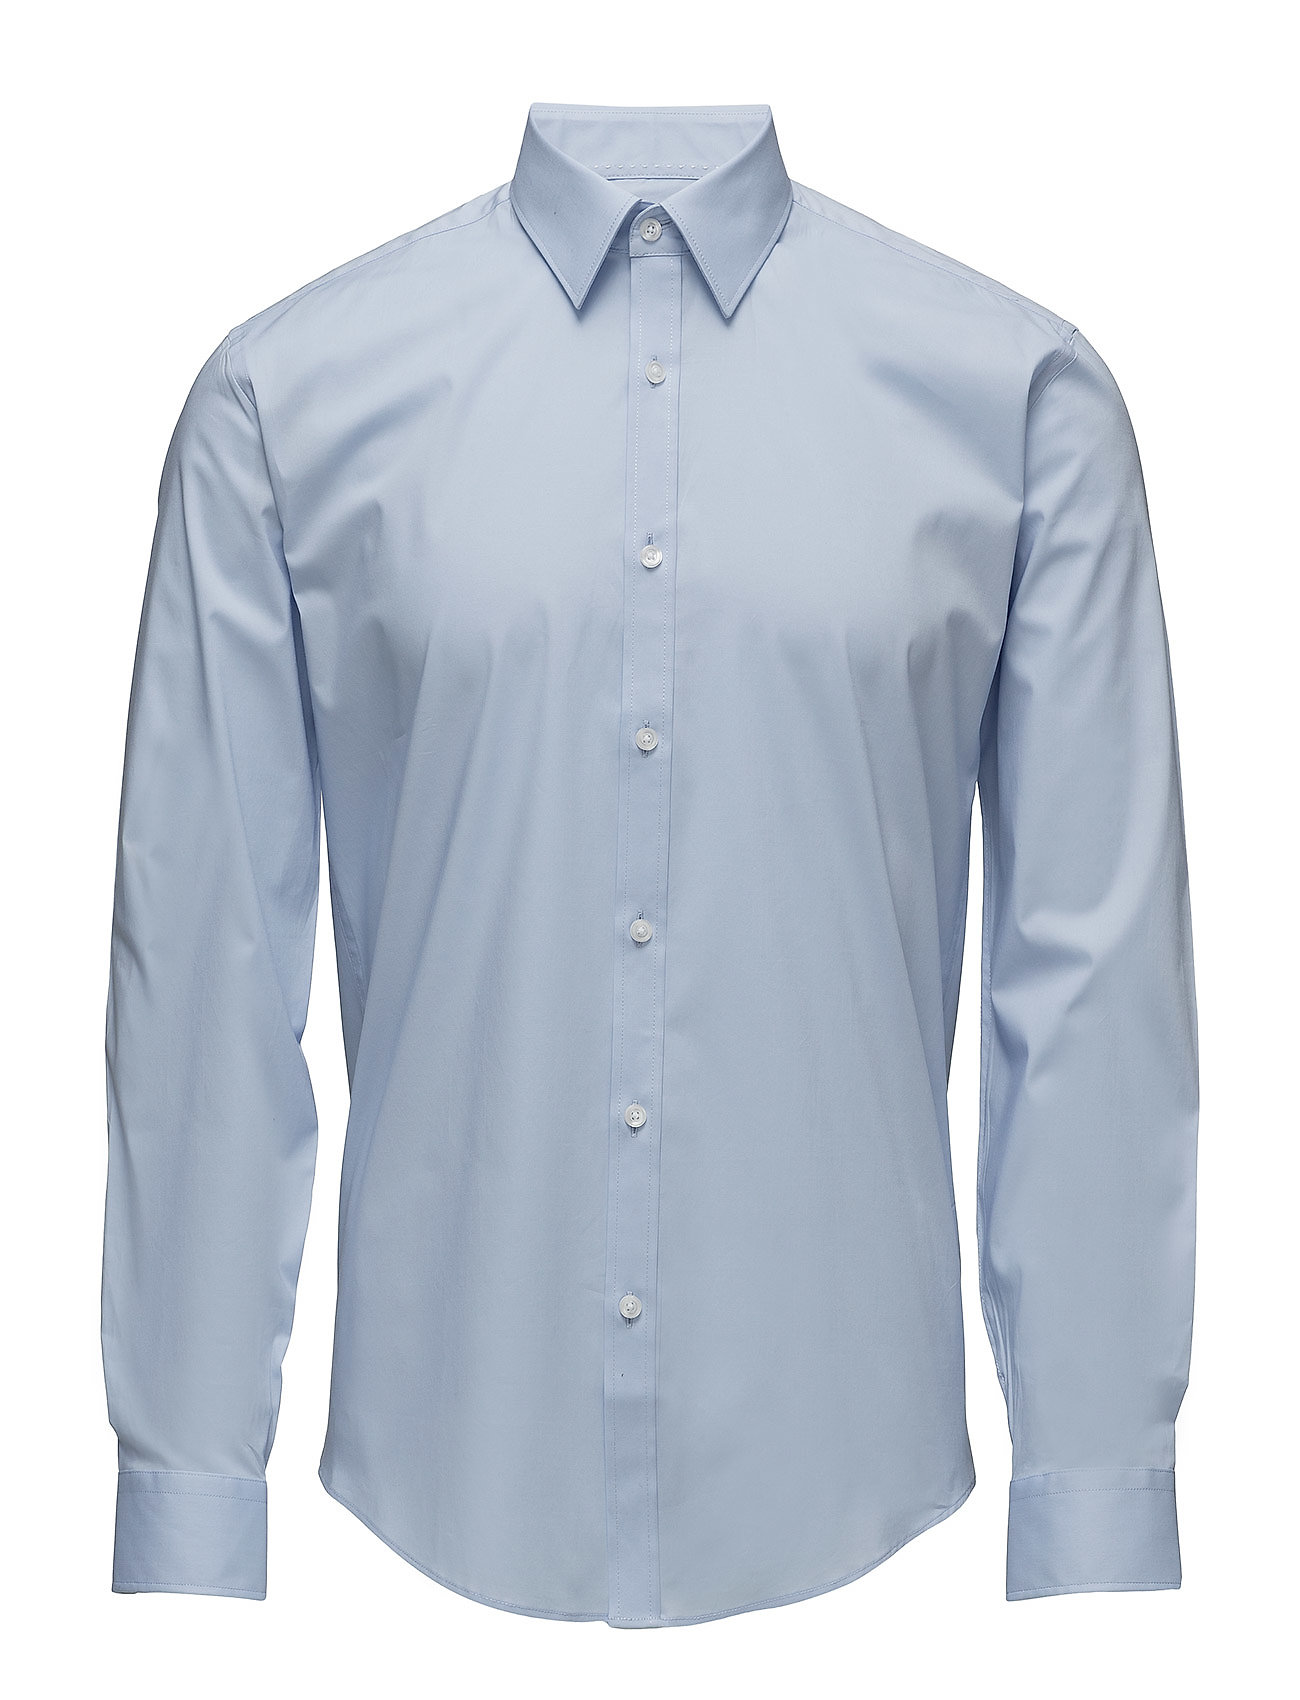 Lindbergh Men's Stretch Shirt L/S - LT BLUE